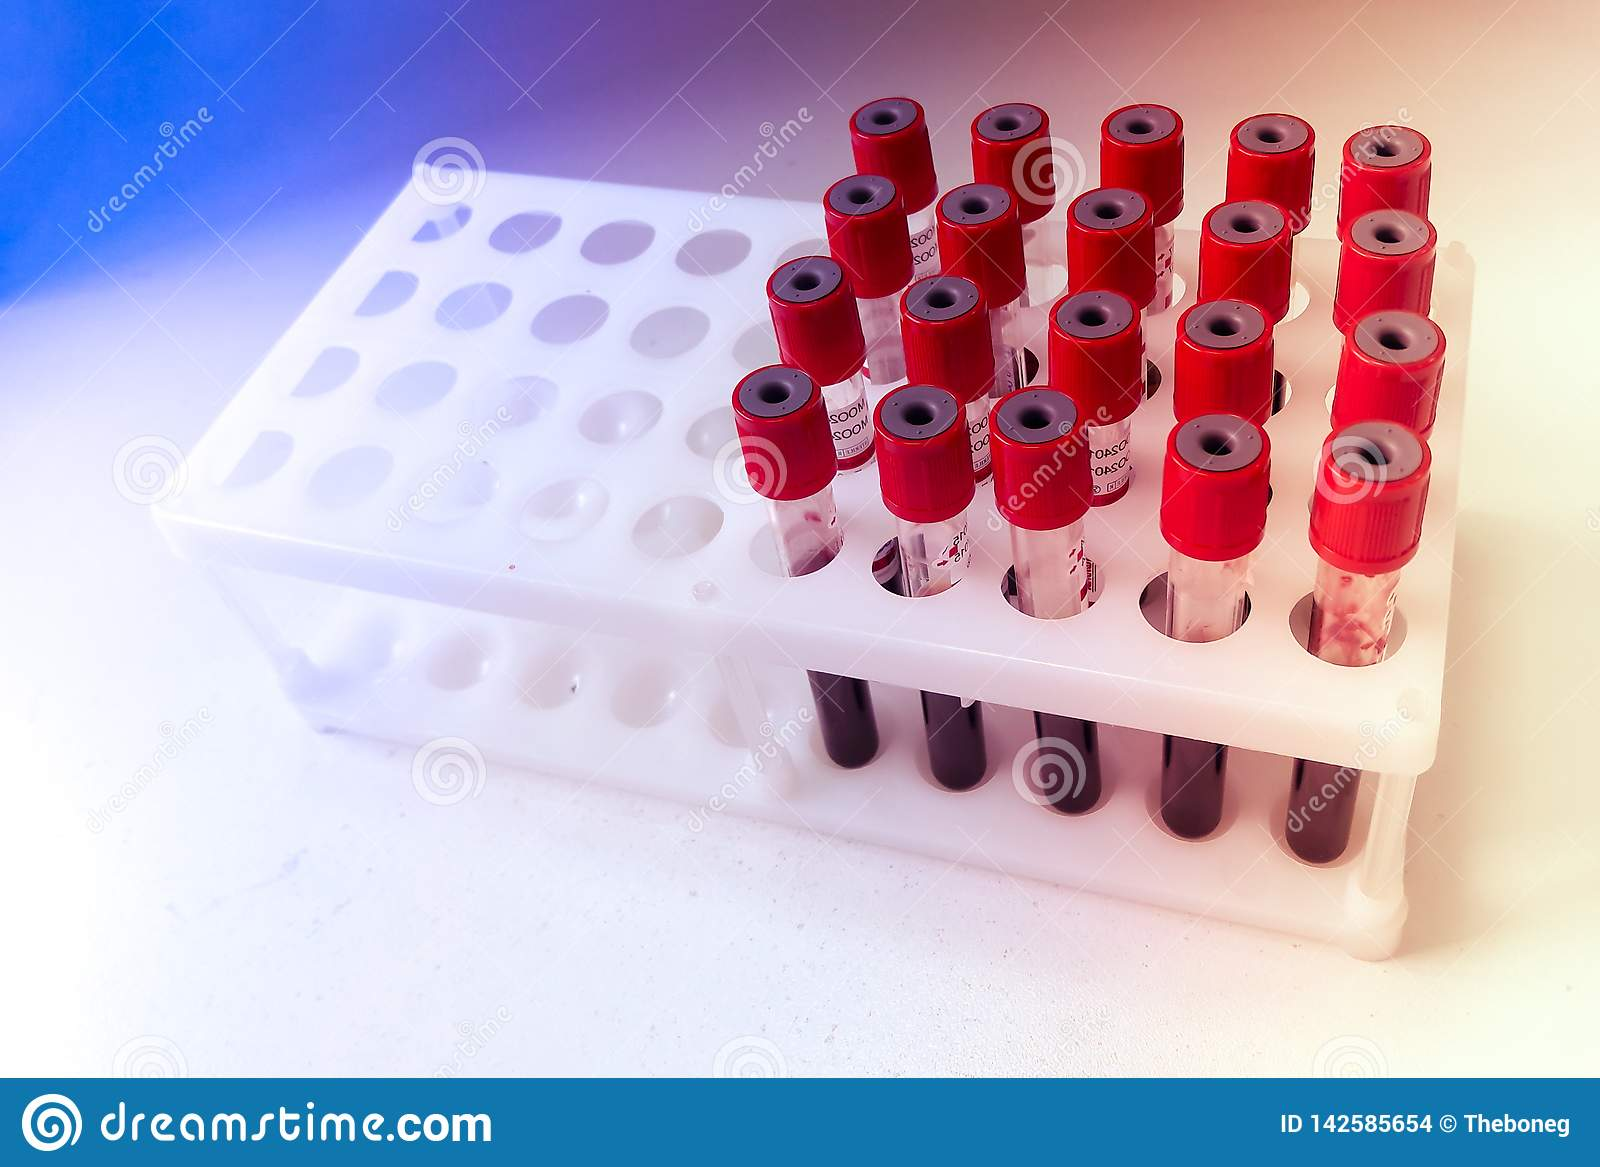 Tubes of blood sample for lab testing